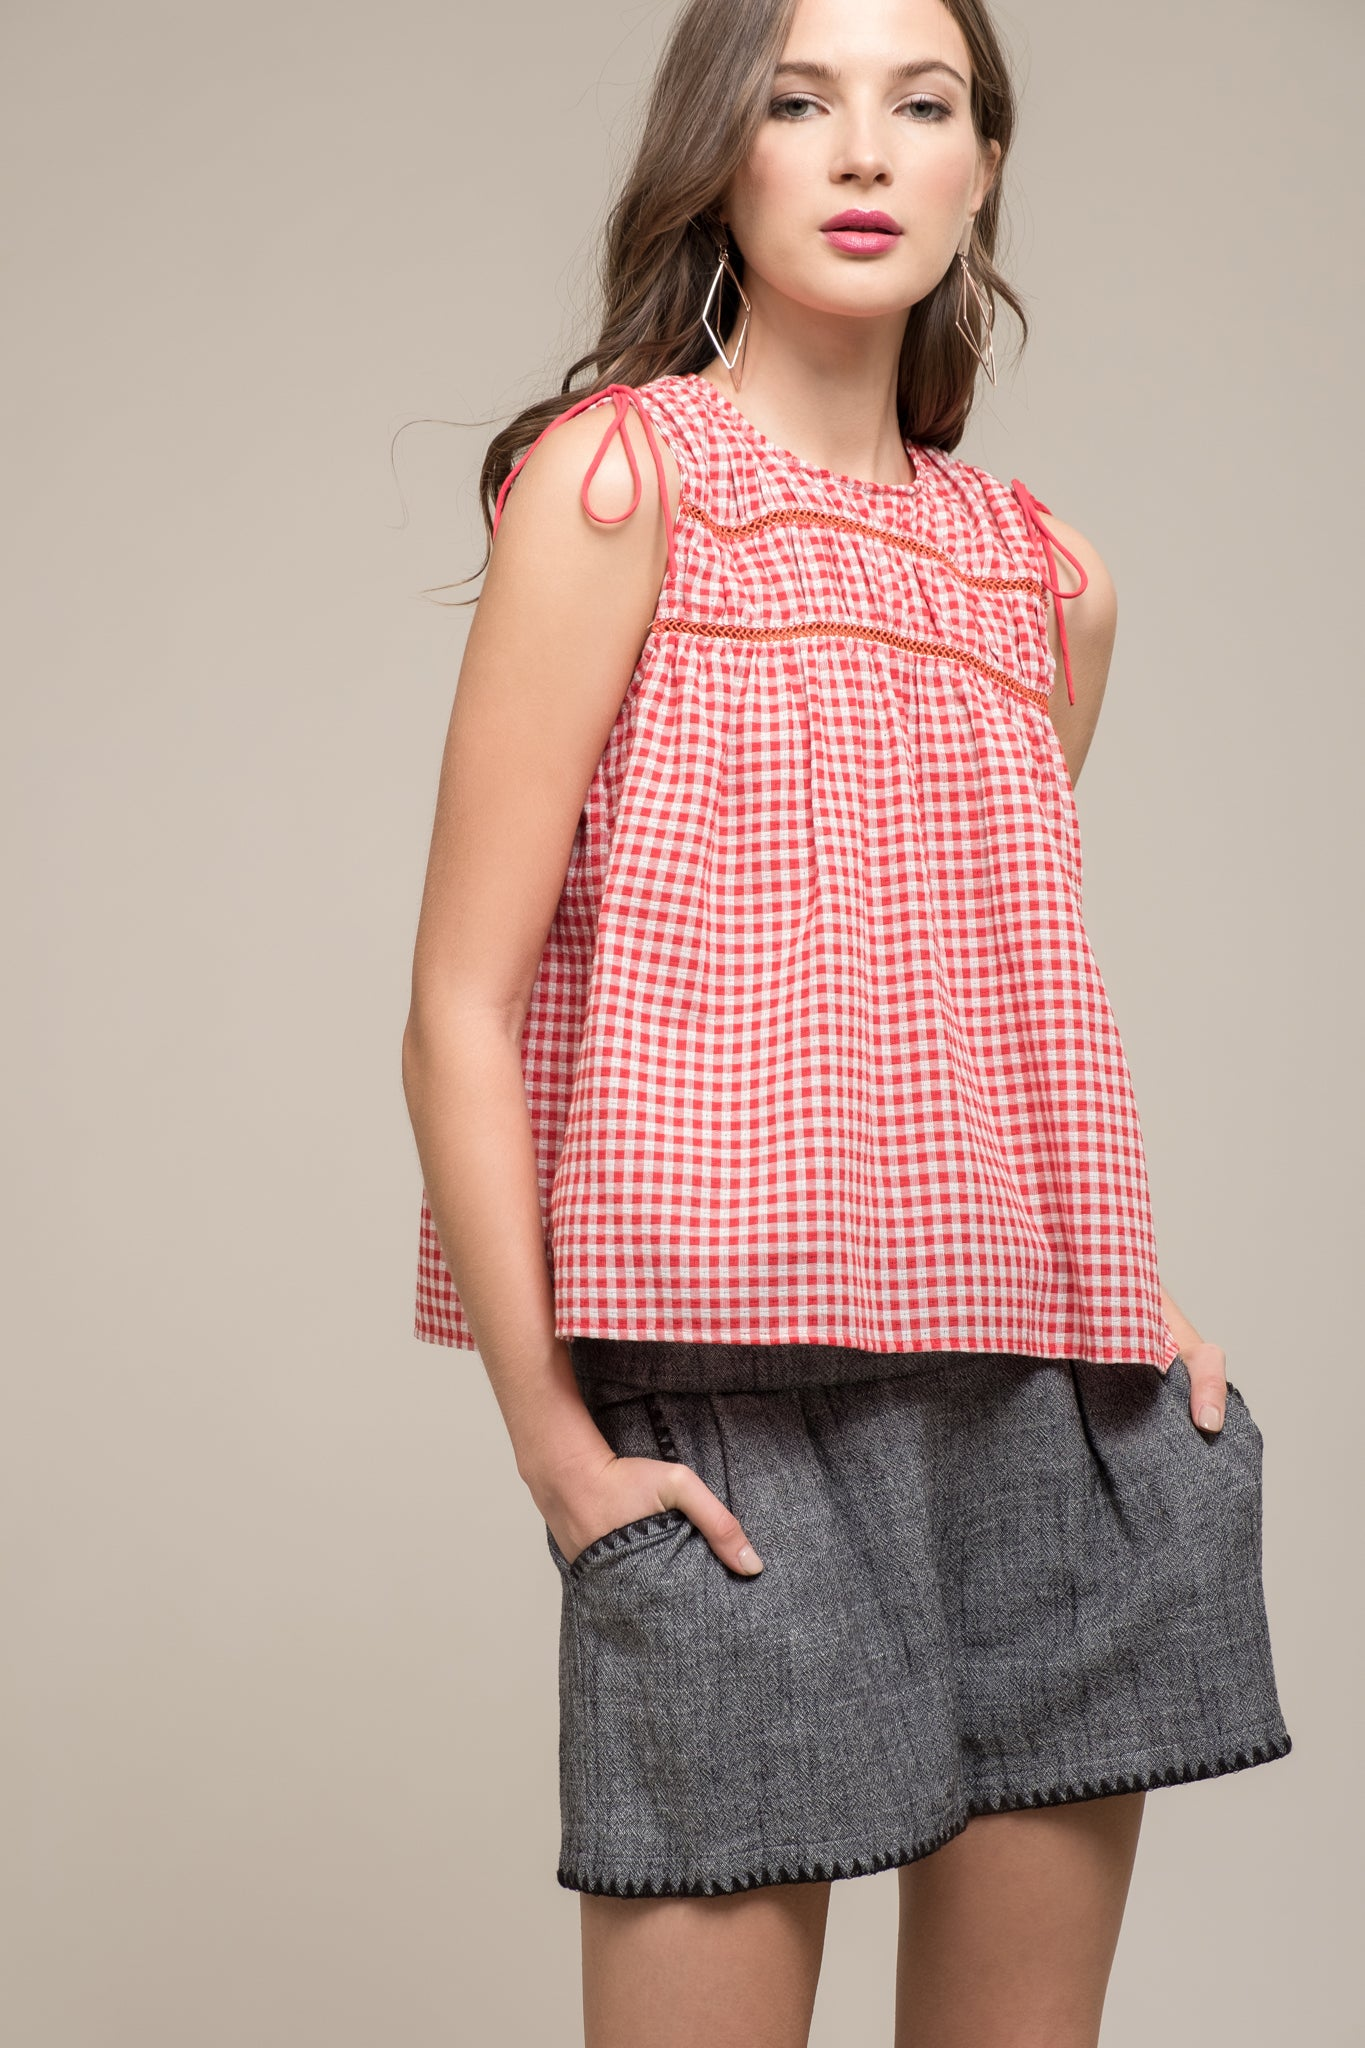 GINGHAM COLD SHOULDER TOP WITH LACE INSET AND SHOULDER TIES